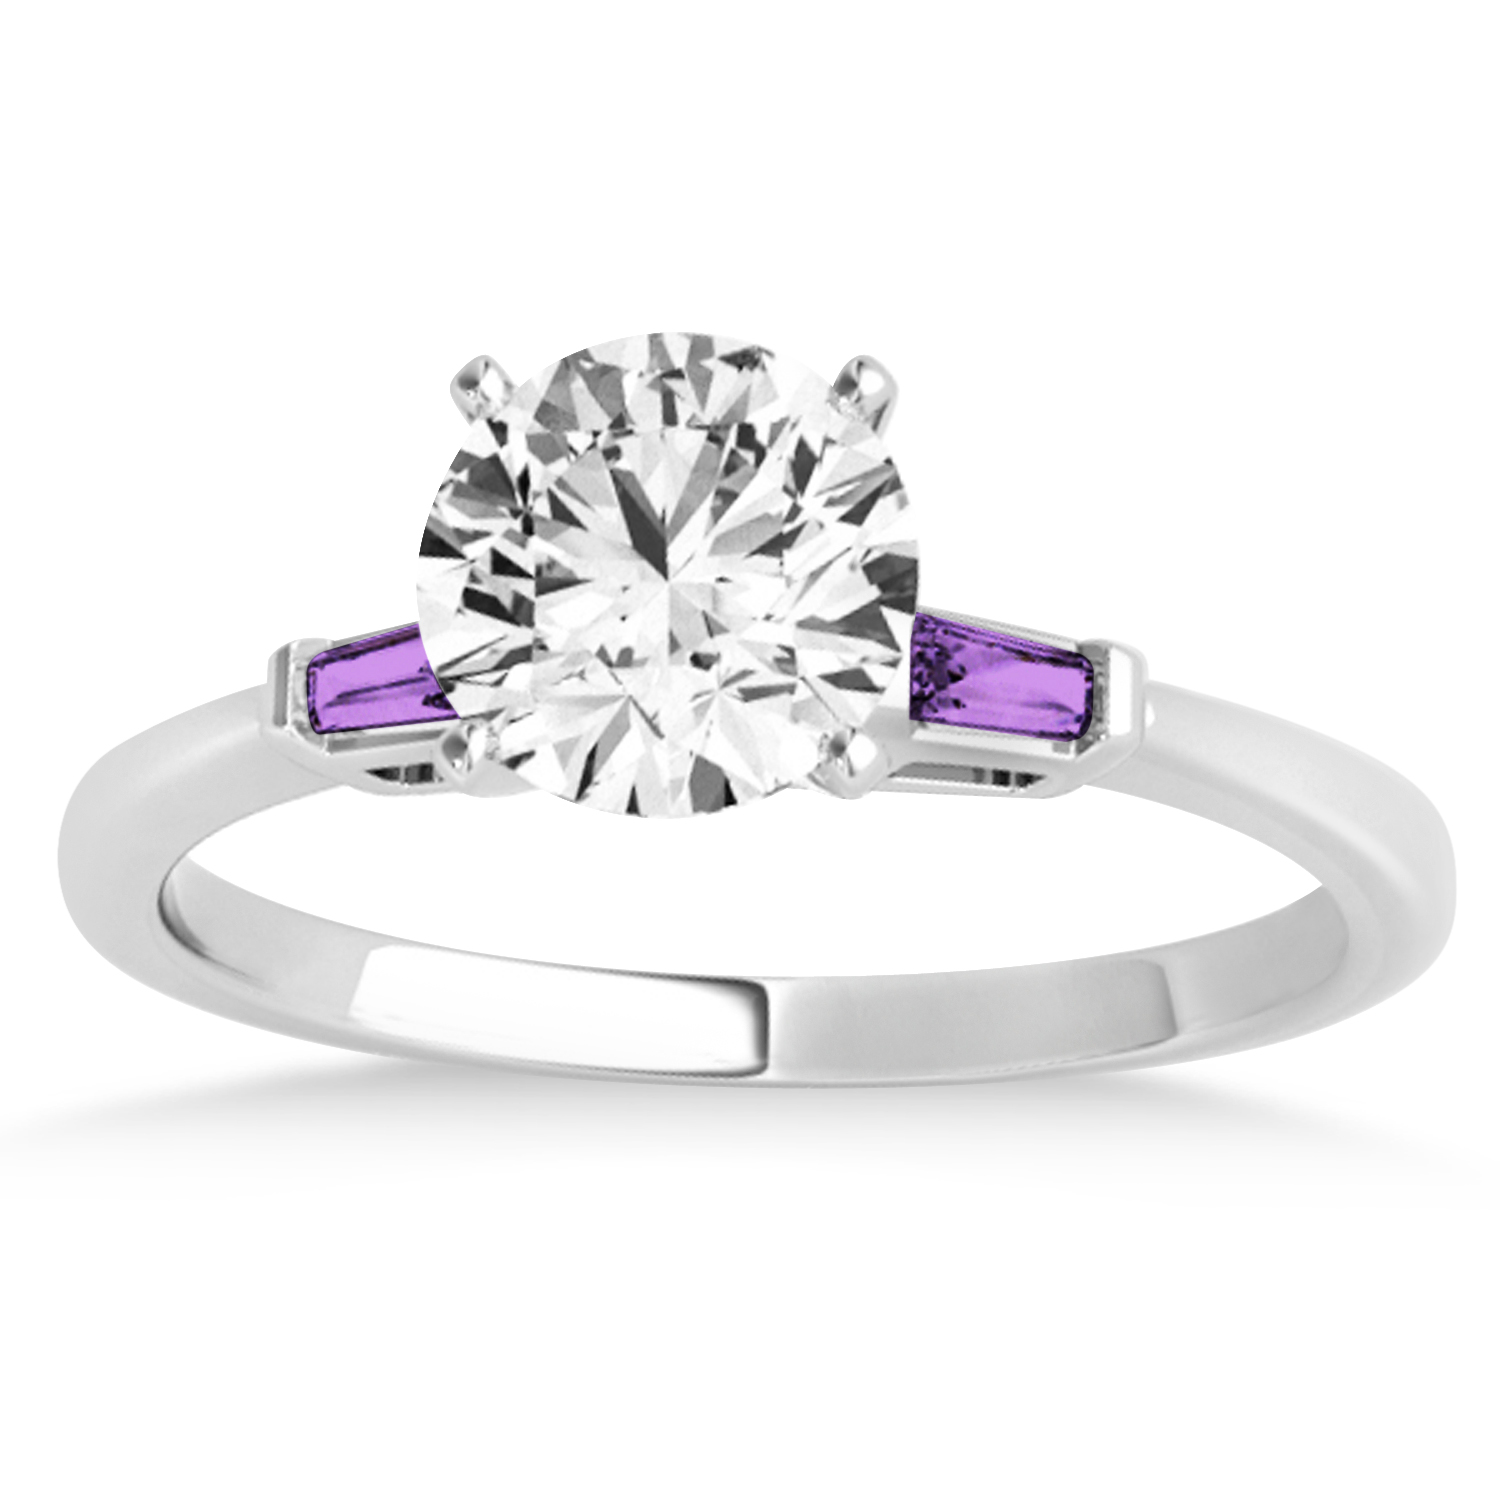 Tapered Baguette 3-Stone Amethyst Engagement Ring 18k White Gold (0.10ct)